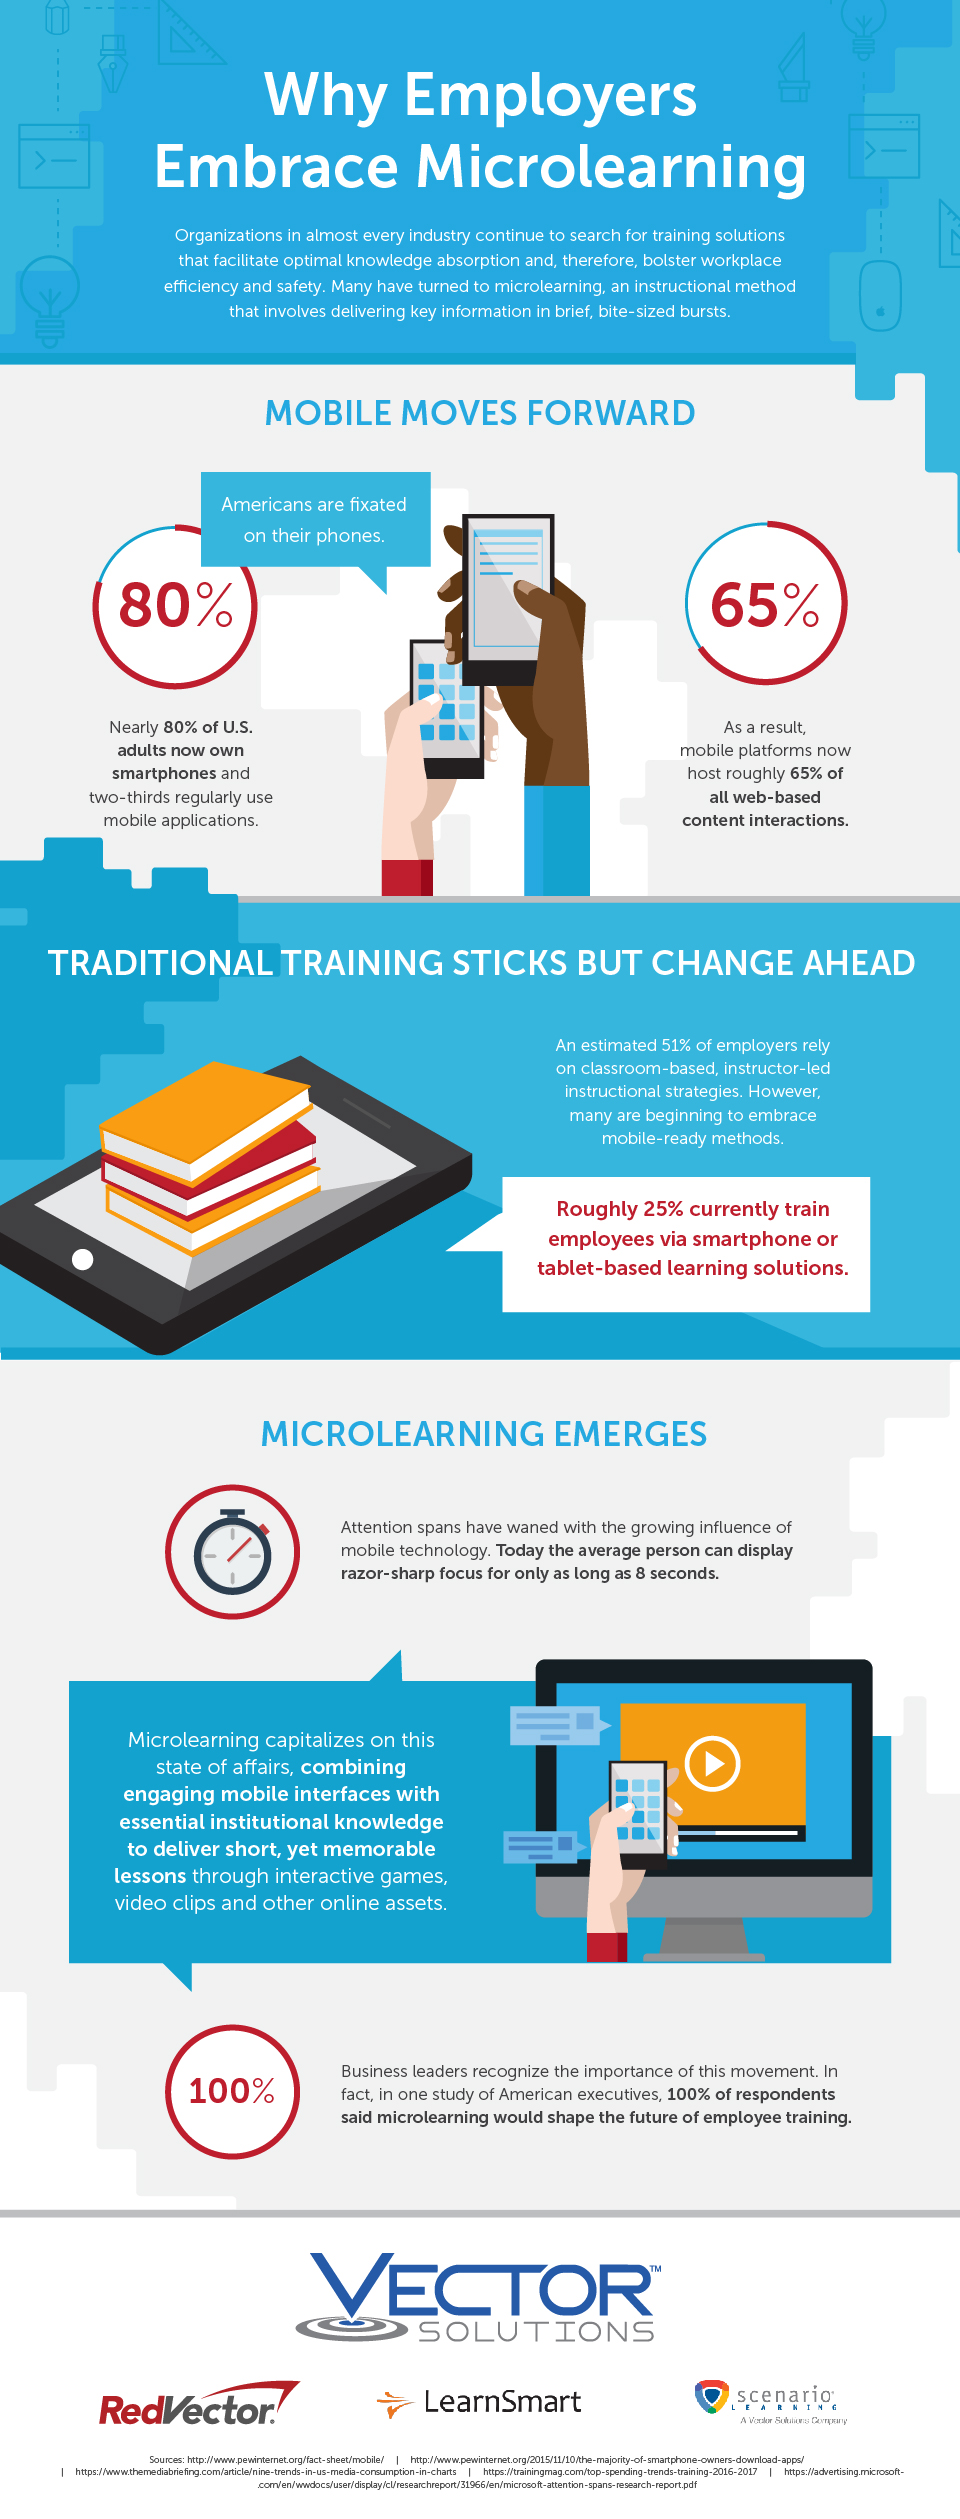 INFOGRAPHIC: Why Employers Are Embracing Microlearning